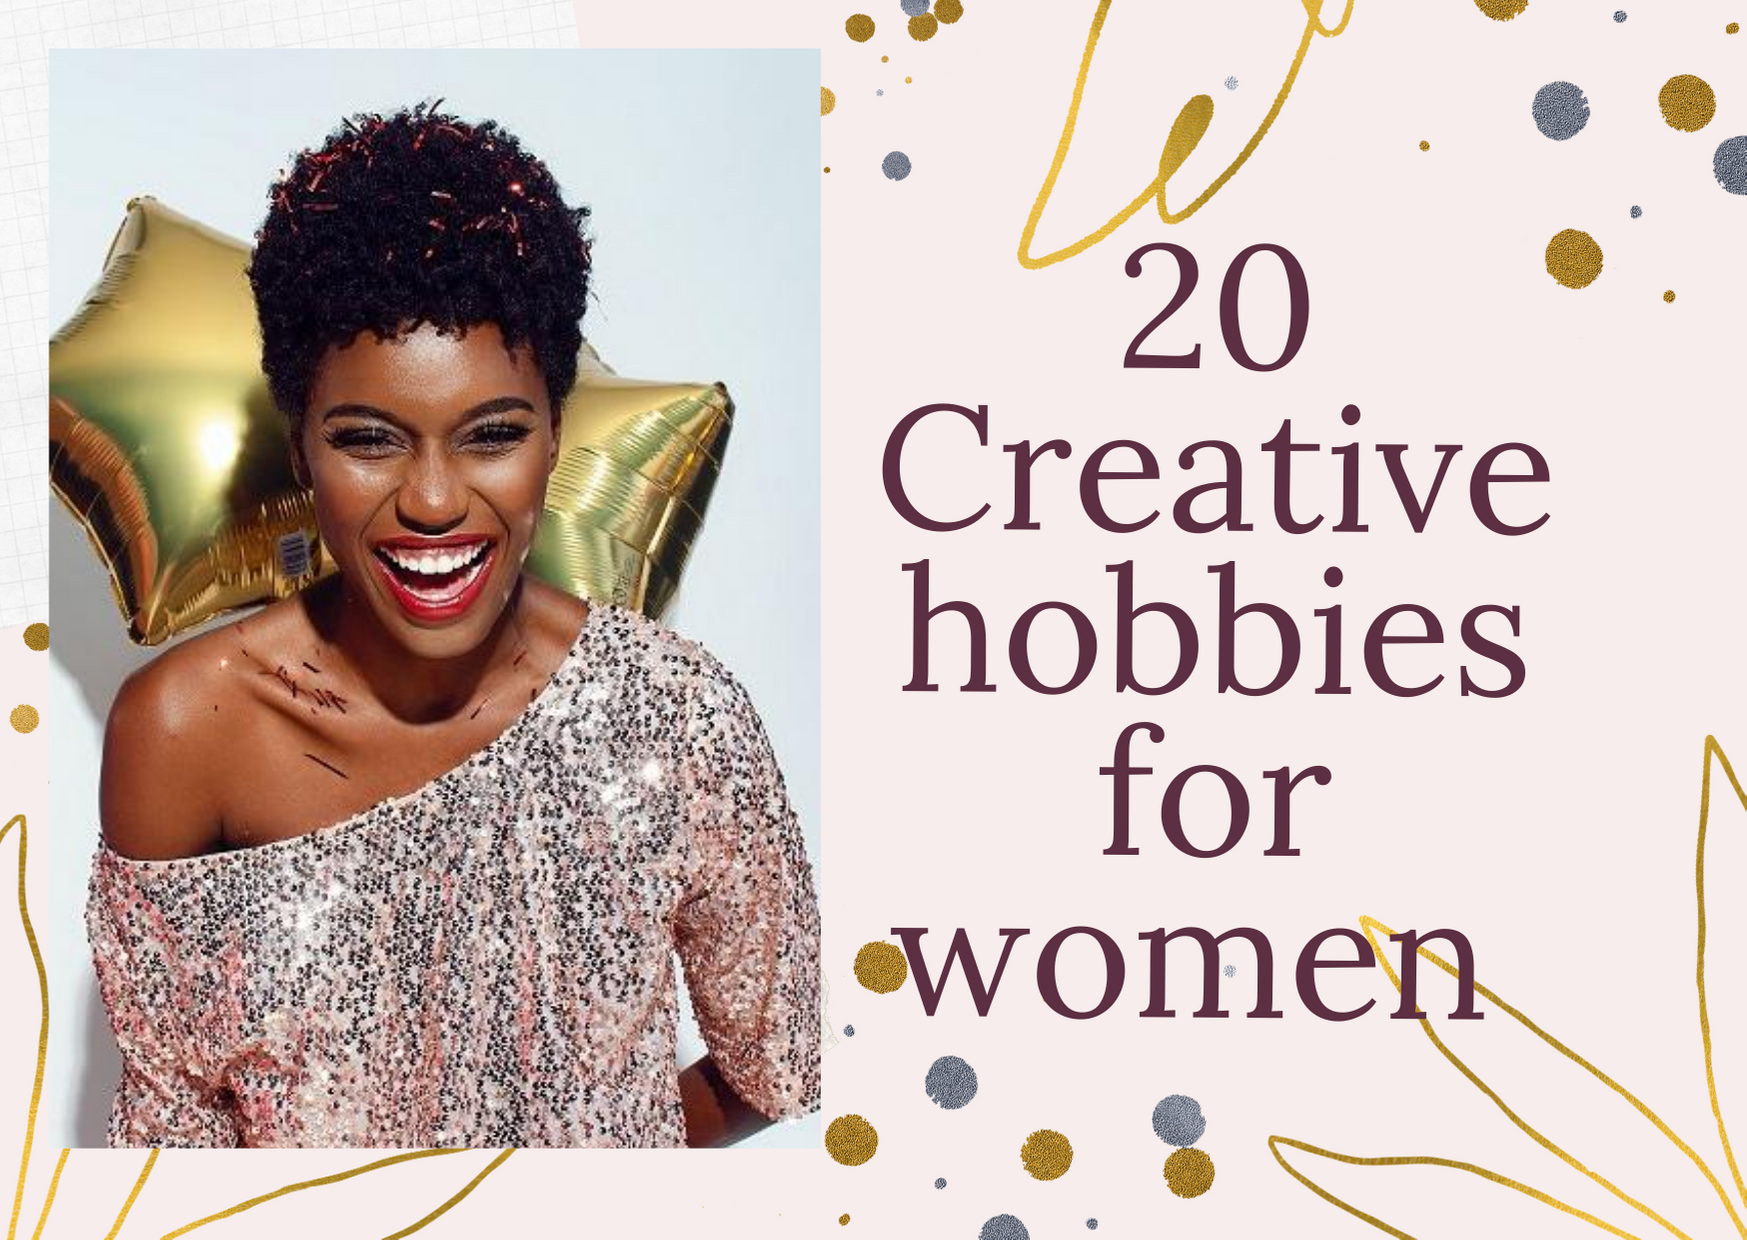 20 Creative Hobbies For Women You Might Not Have Considered Before